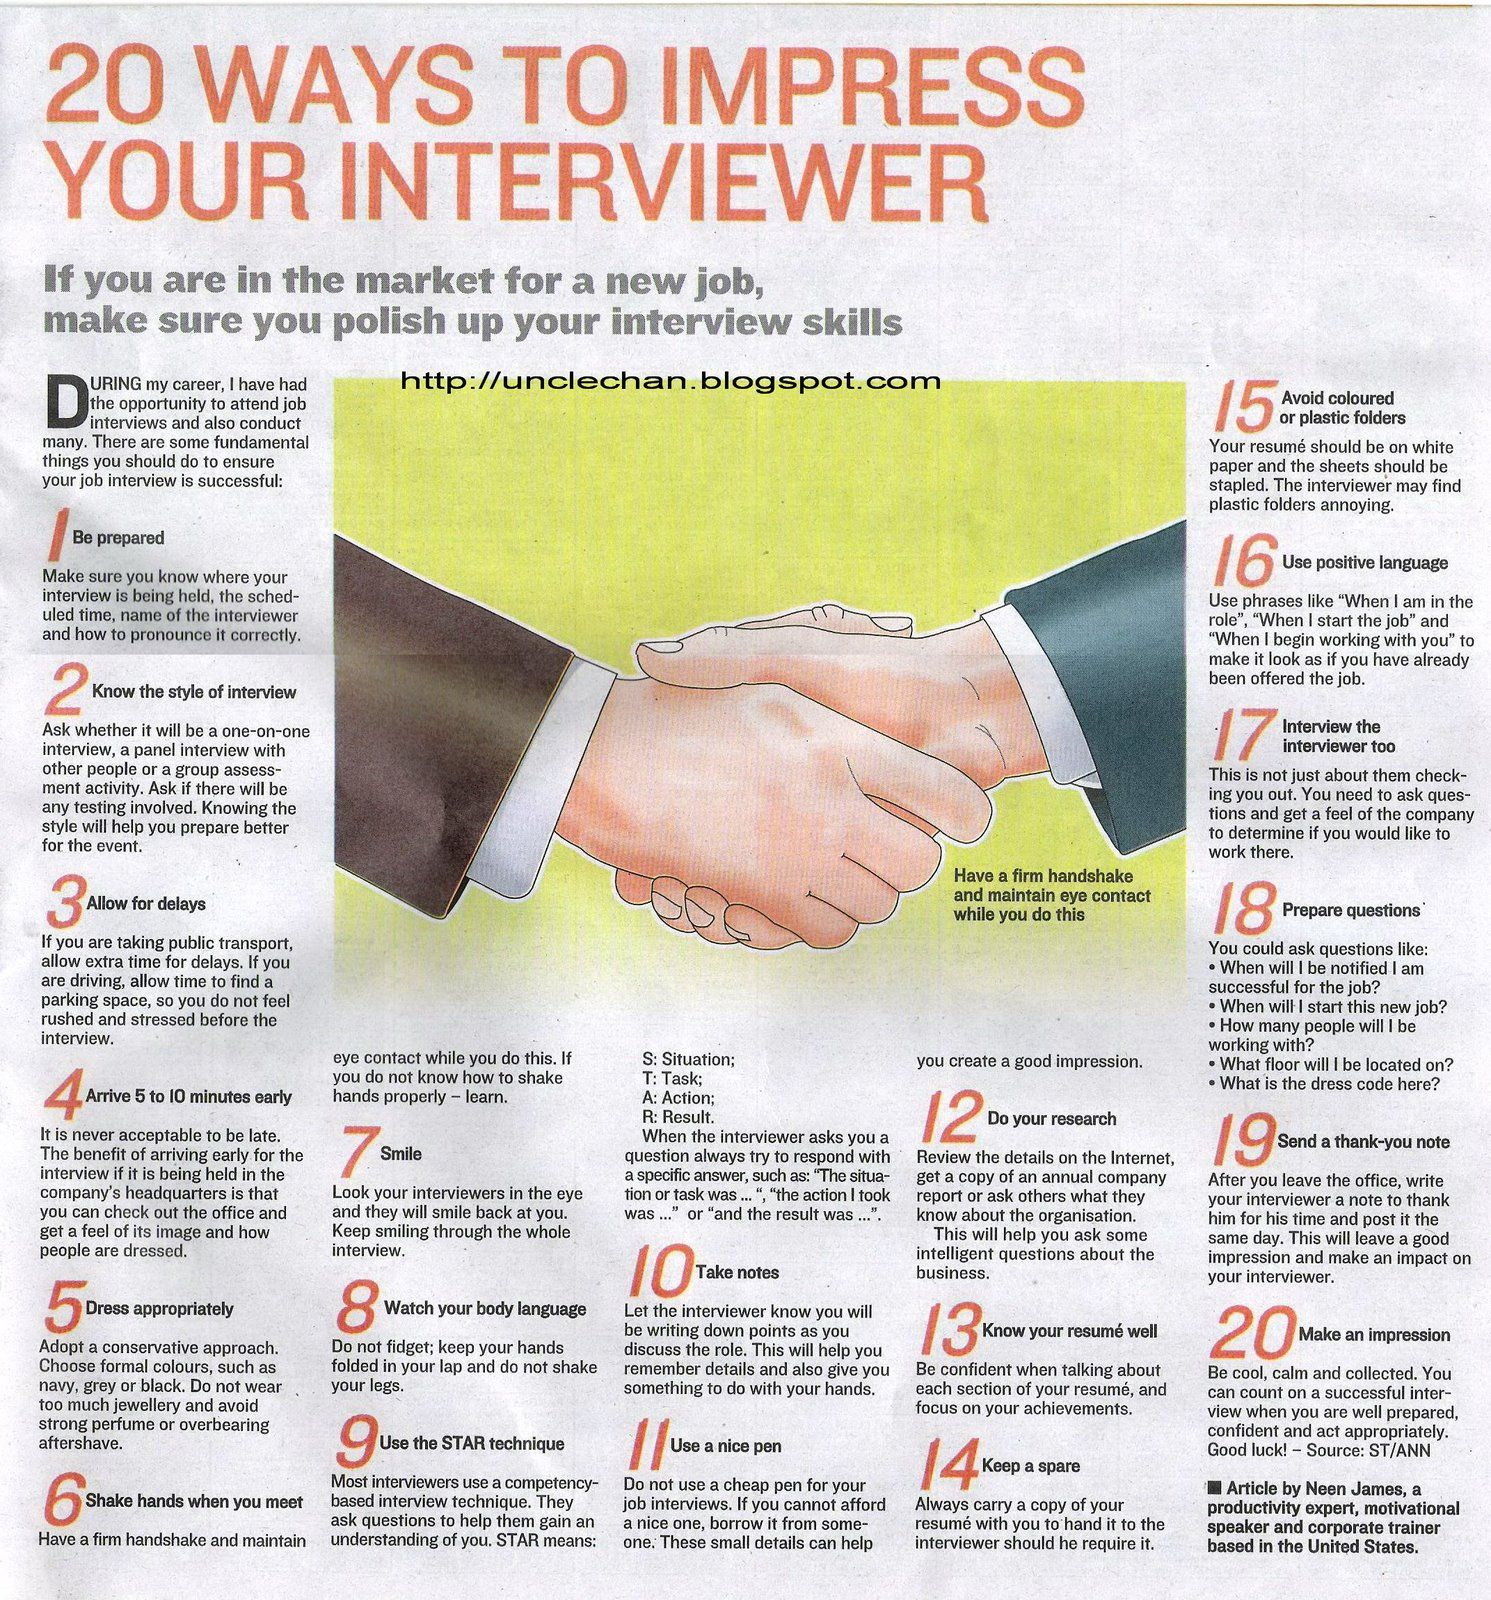 ways to impress your interviewer my mother coached me well on 20 ways to impress your interviewer my mother coached me well on how to interview